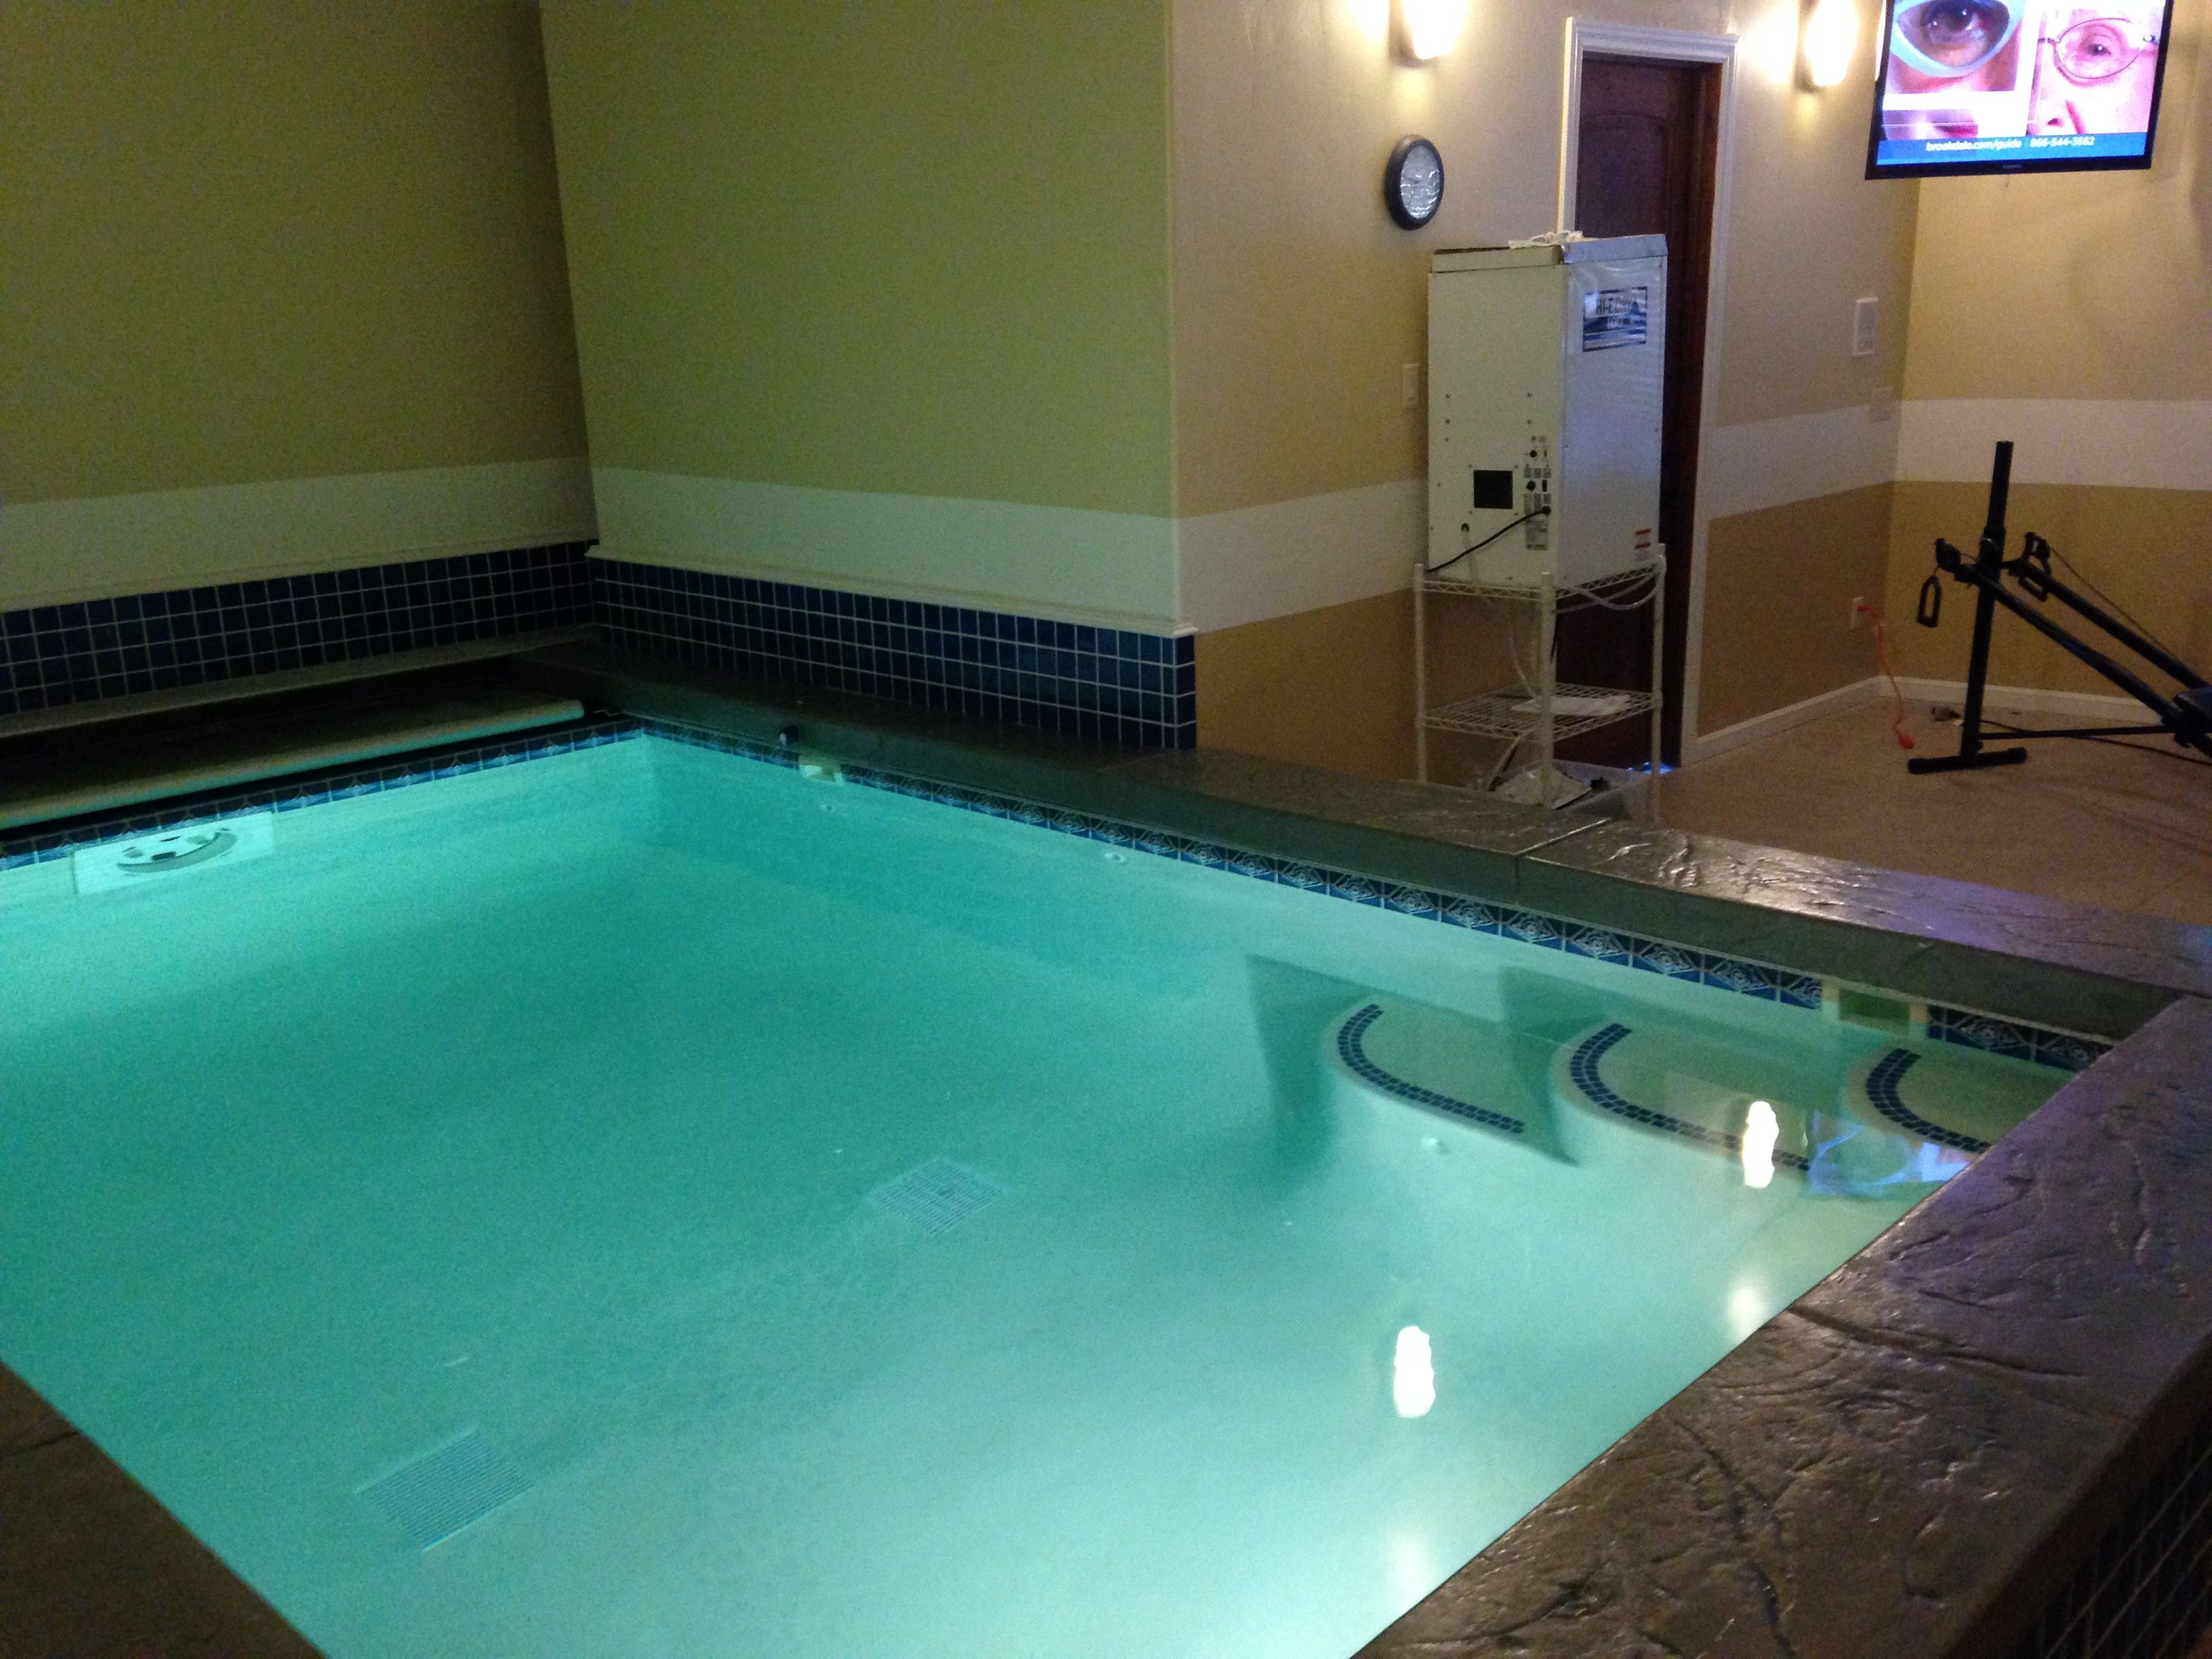 Indoor pool for year round exercise. Turn on current for continuous ...